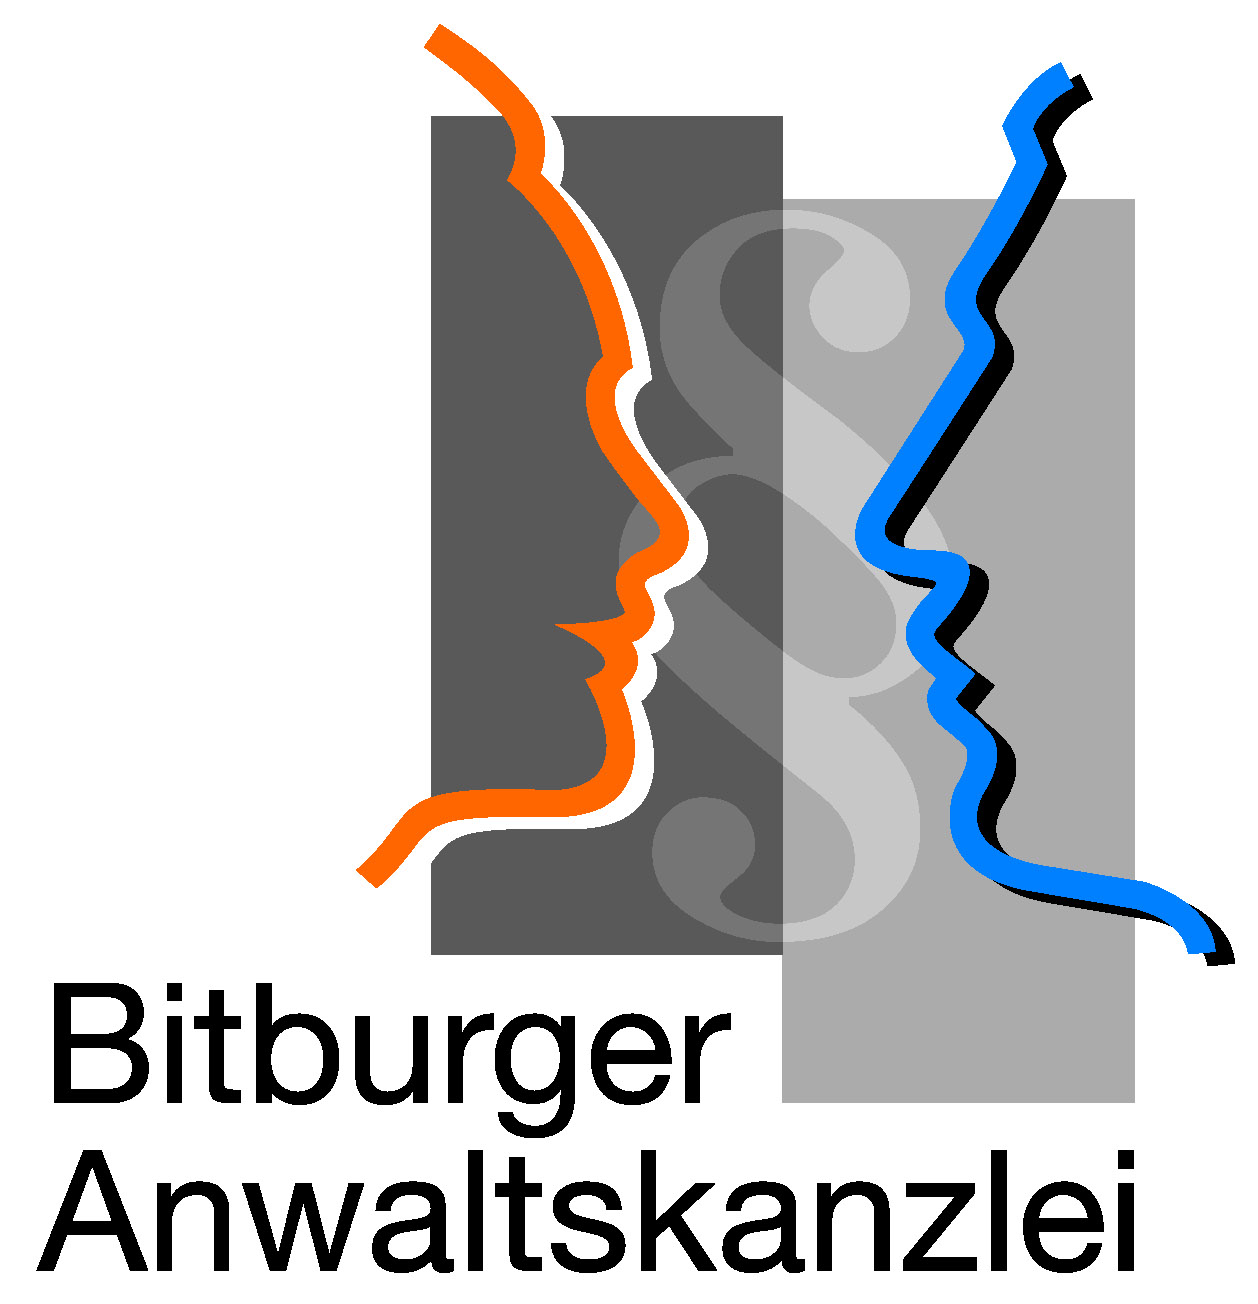 bitburger anwaltskanzlei bretz w lz theisges in bitburg branchenbuch deutschland. Black Bedroom Furniture Sets. Home Design Ideas